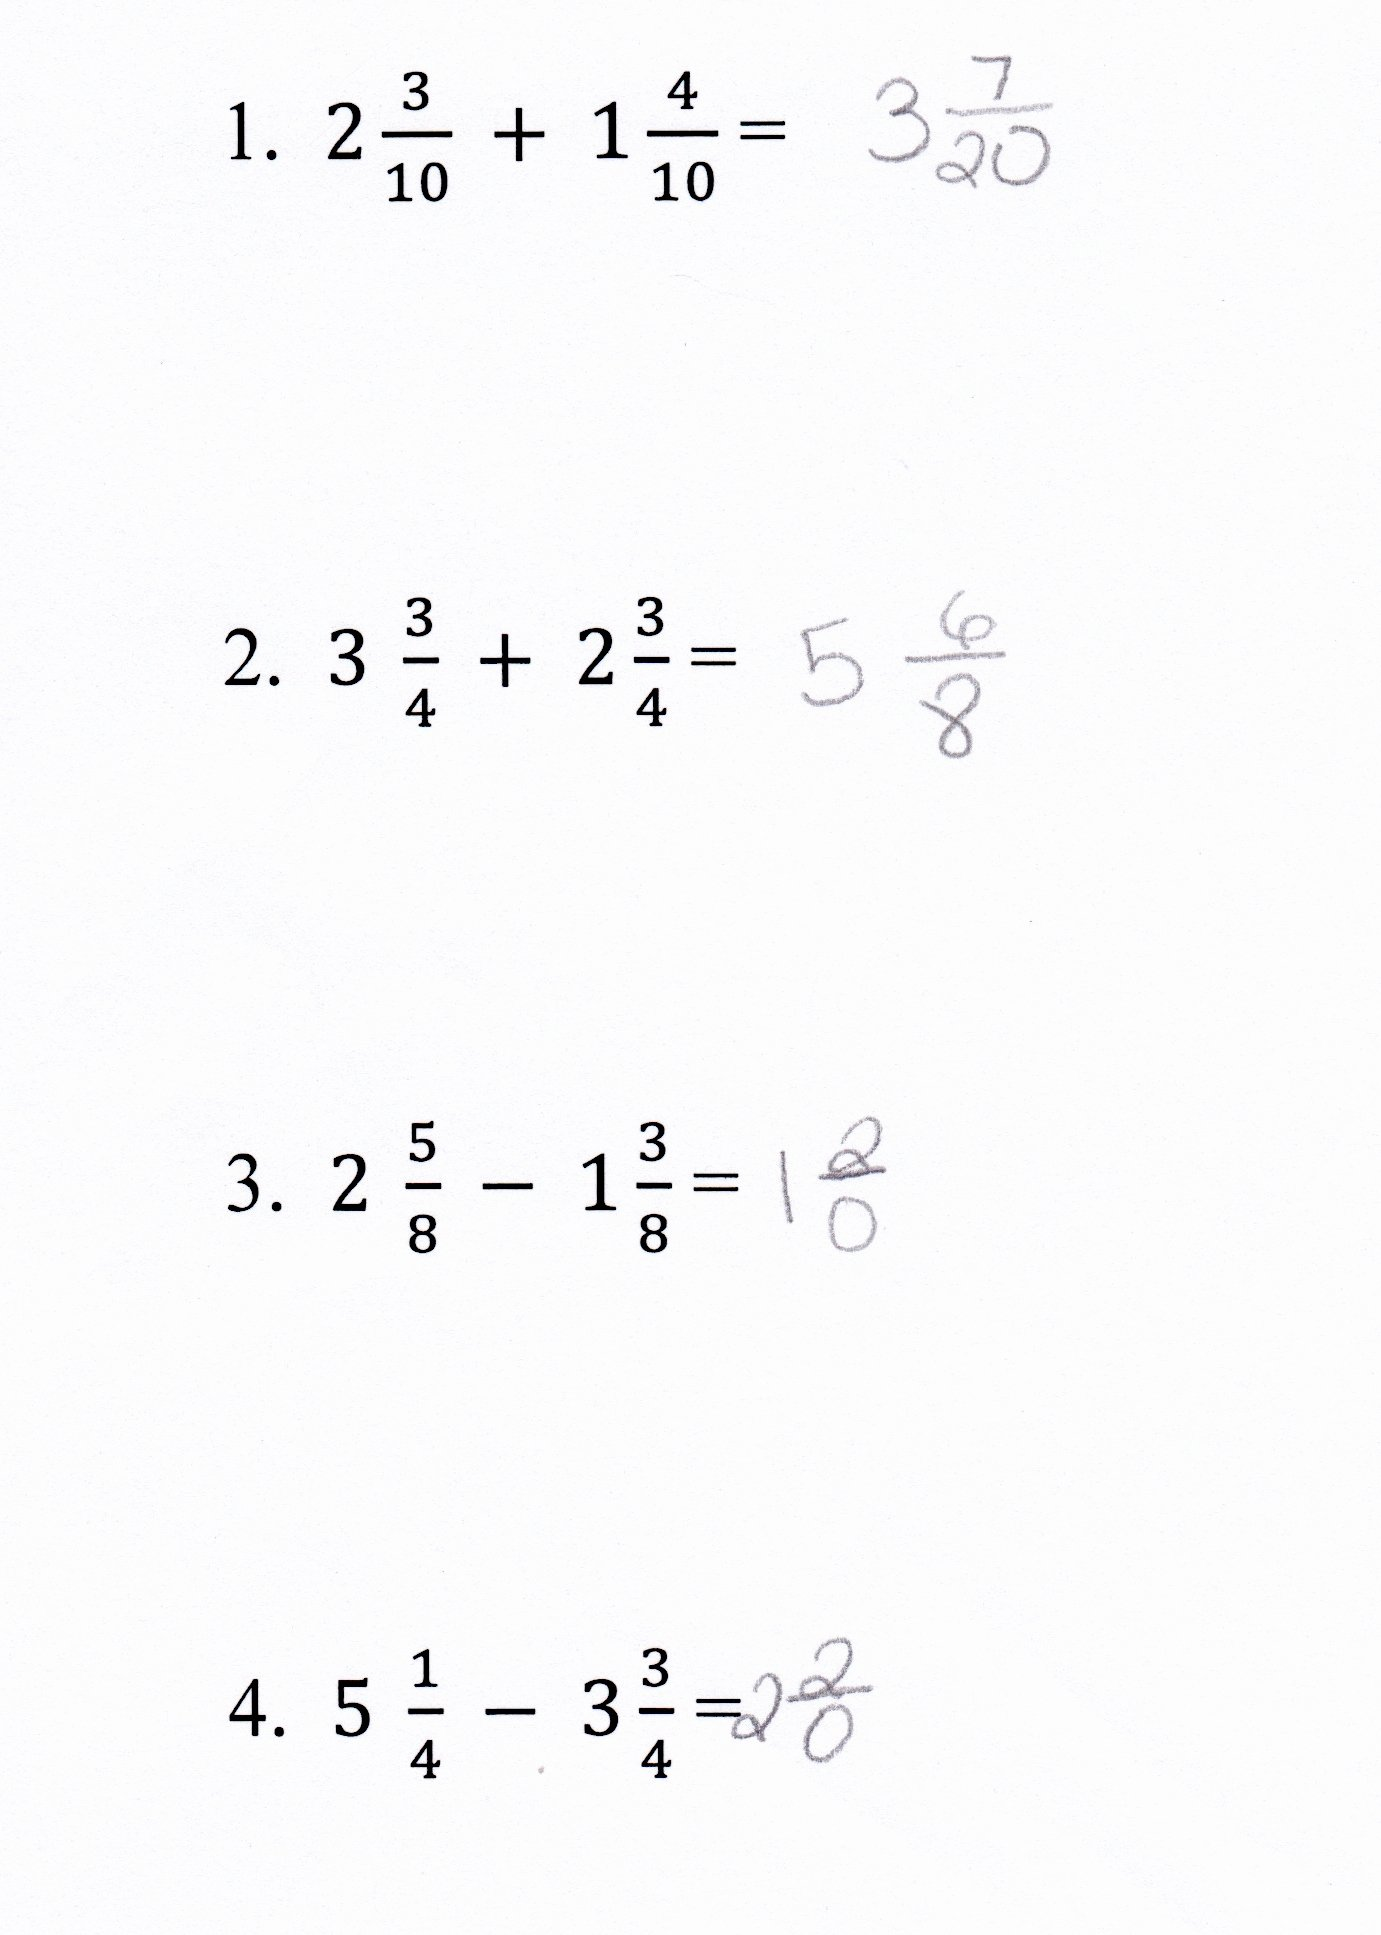 Subtracting Mixed Numbers Worksheet New Worksheet Adding and Subtracting Fractions and Mixed